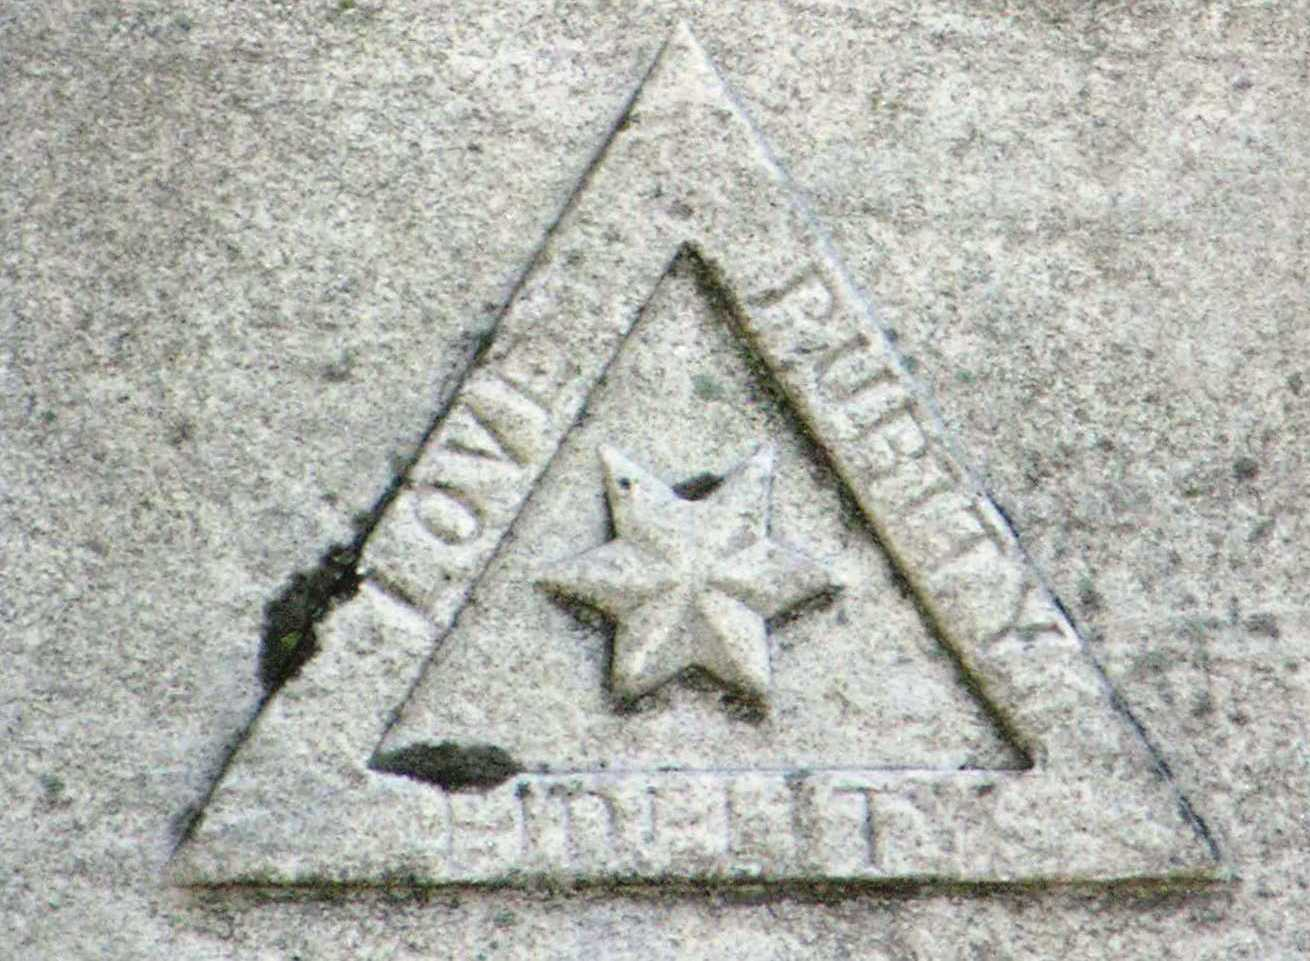 Triangle motif carved in marble.